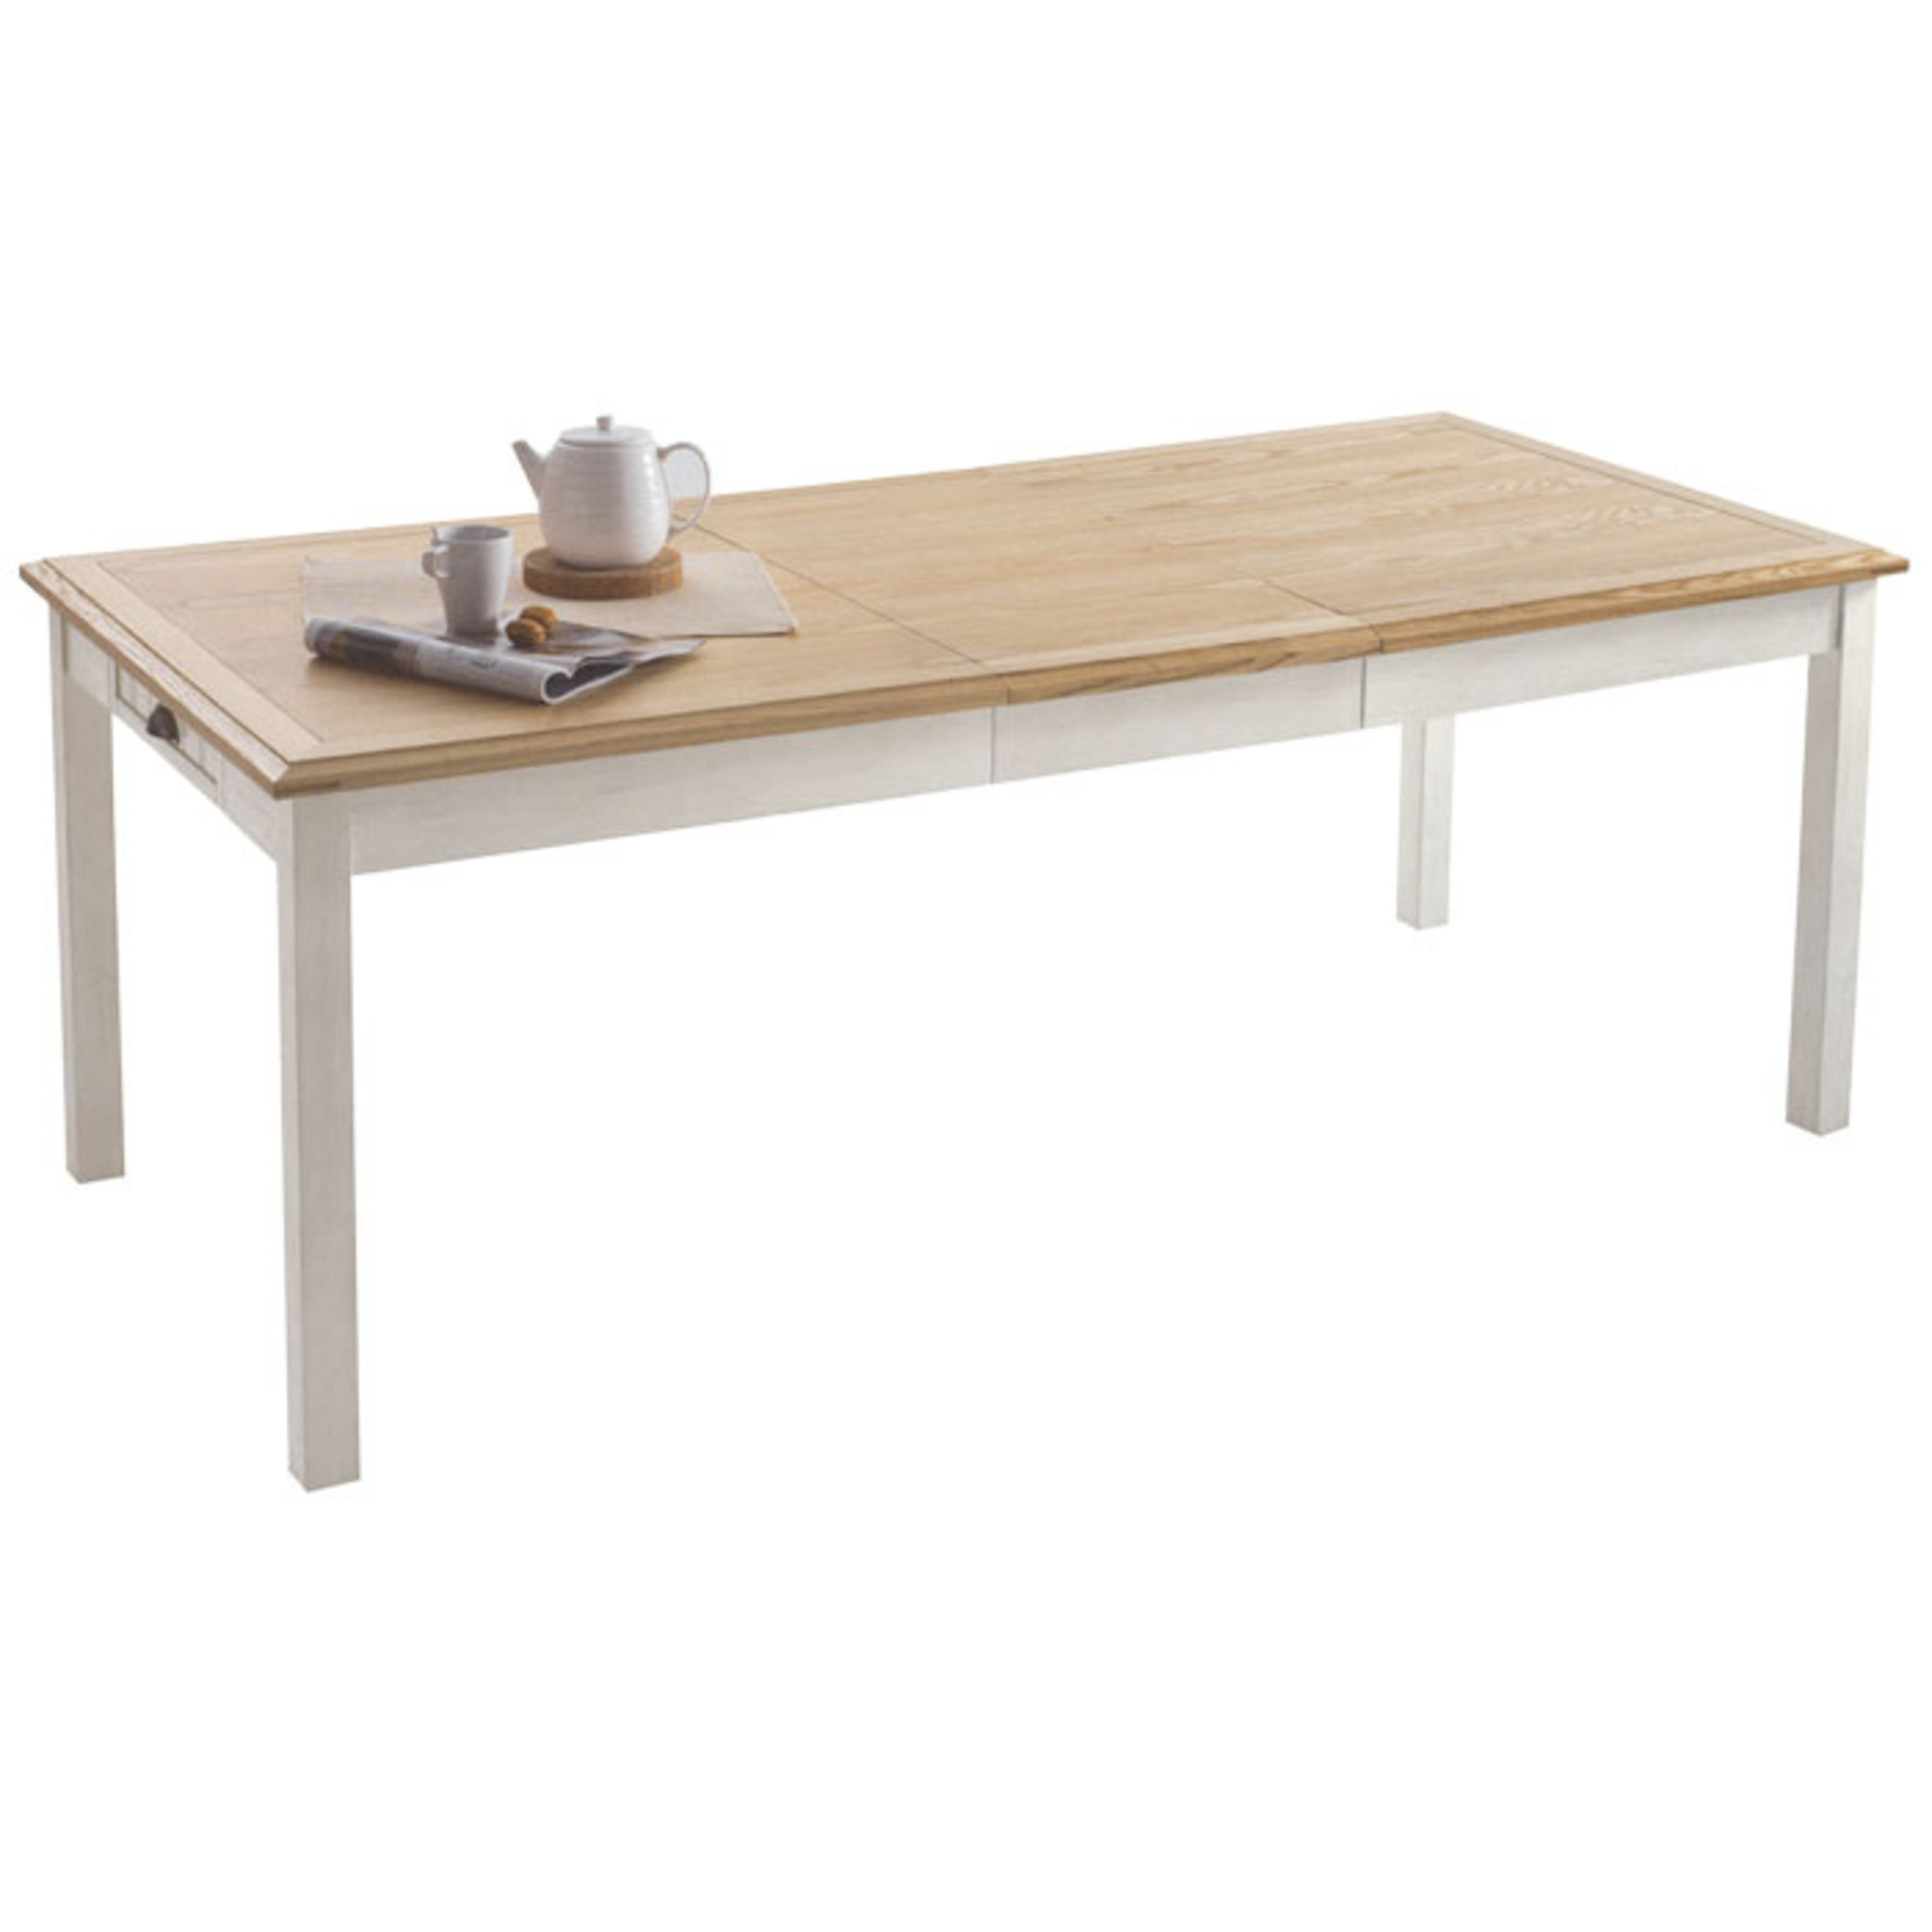 Table rectangulaire allonge berling blanc patin for Table en bois et banc